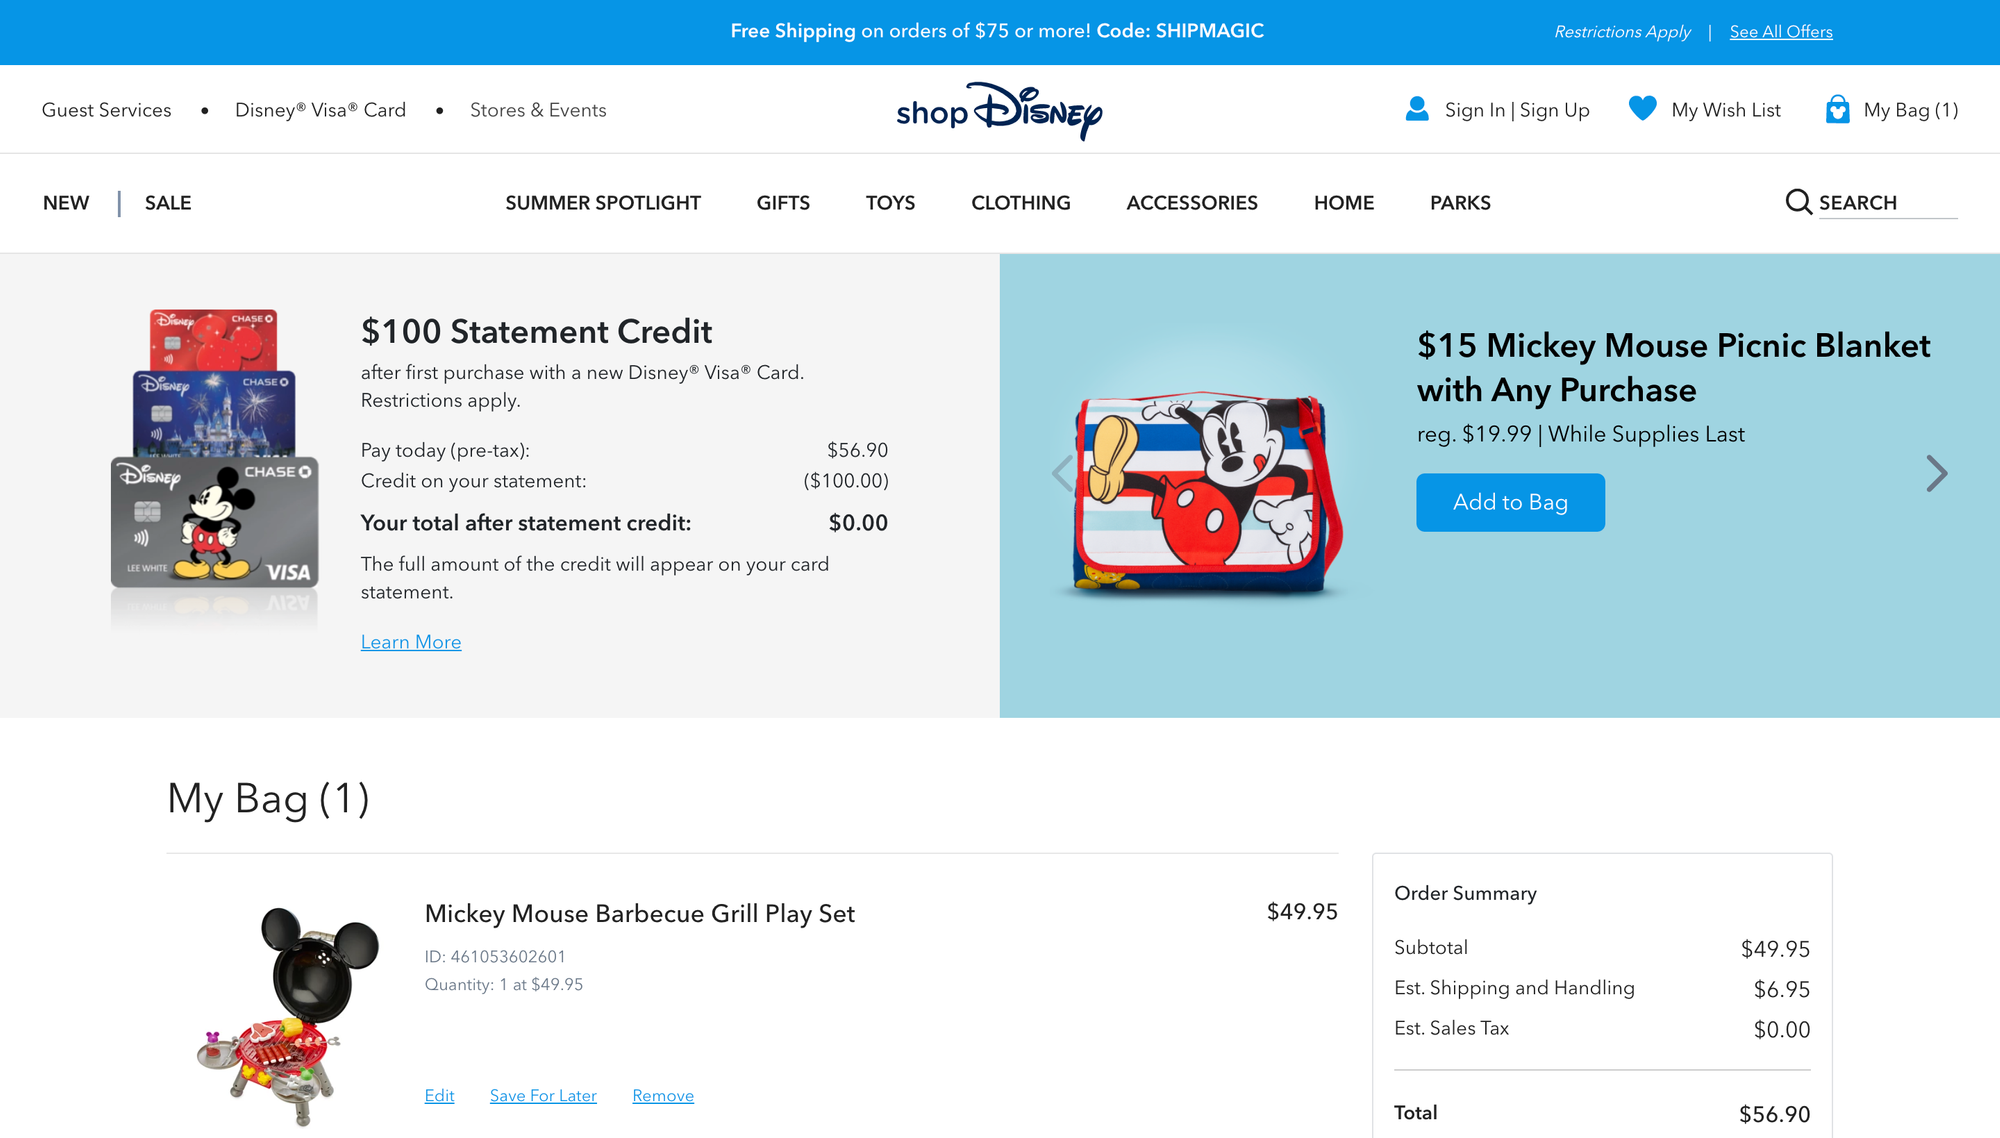 Disney's checkout form - Review and analysis of ecommerce form and checkouts